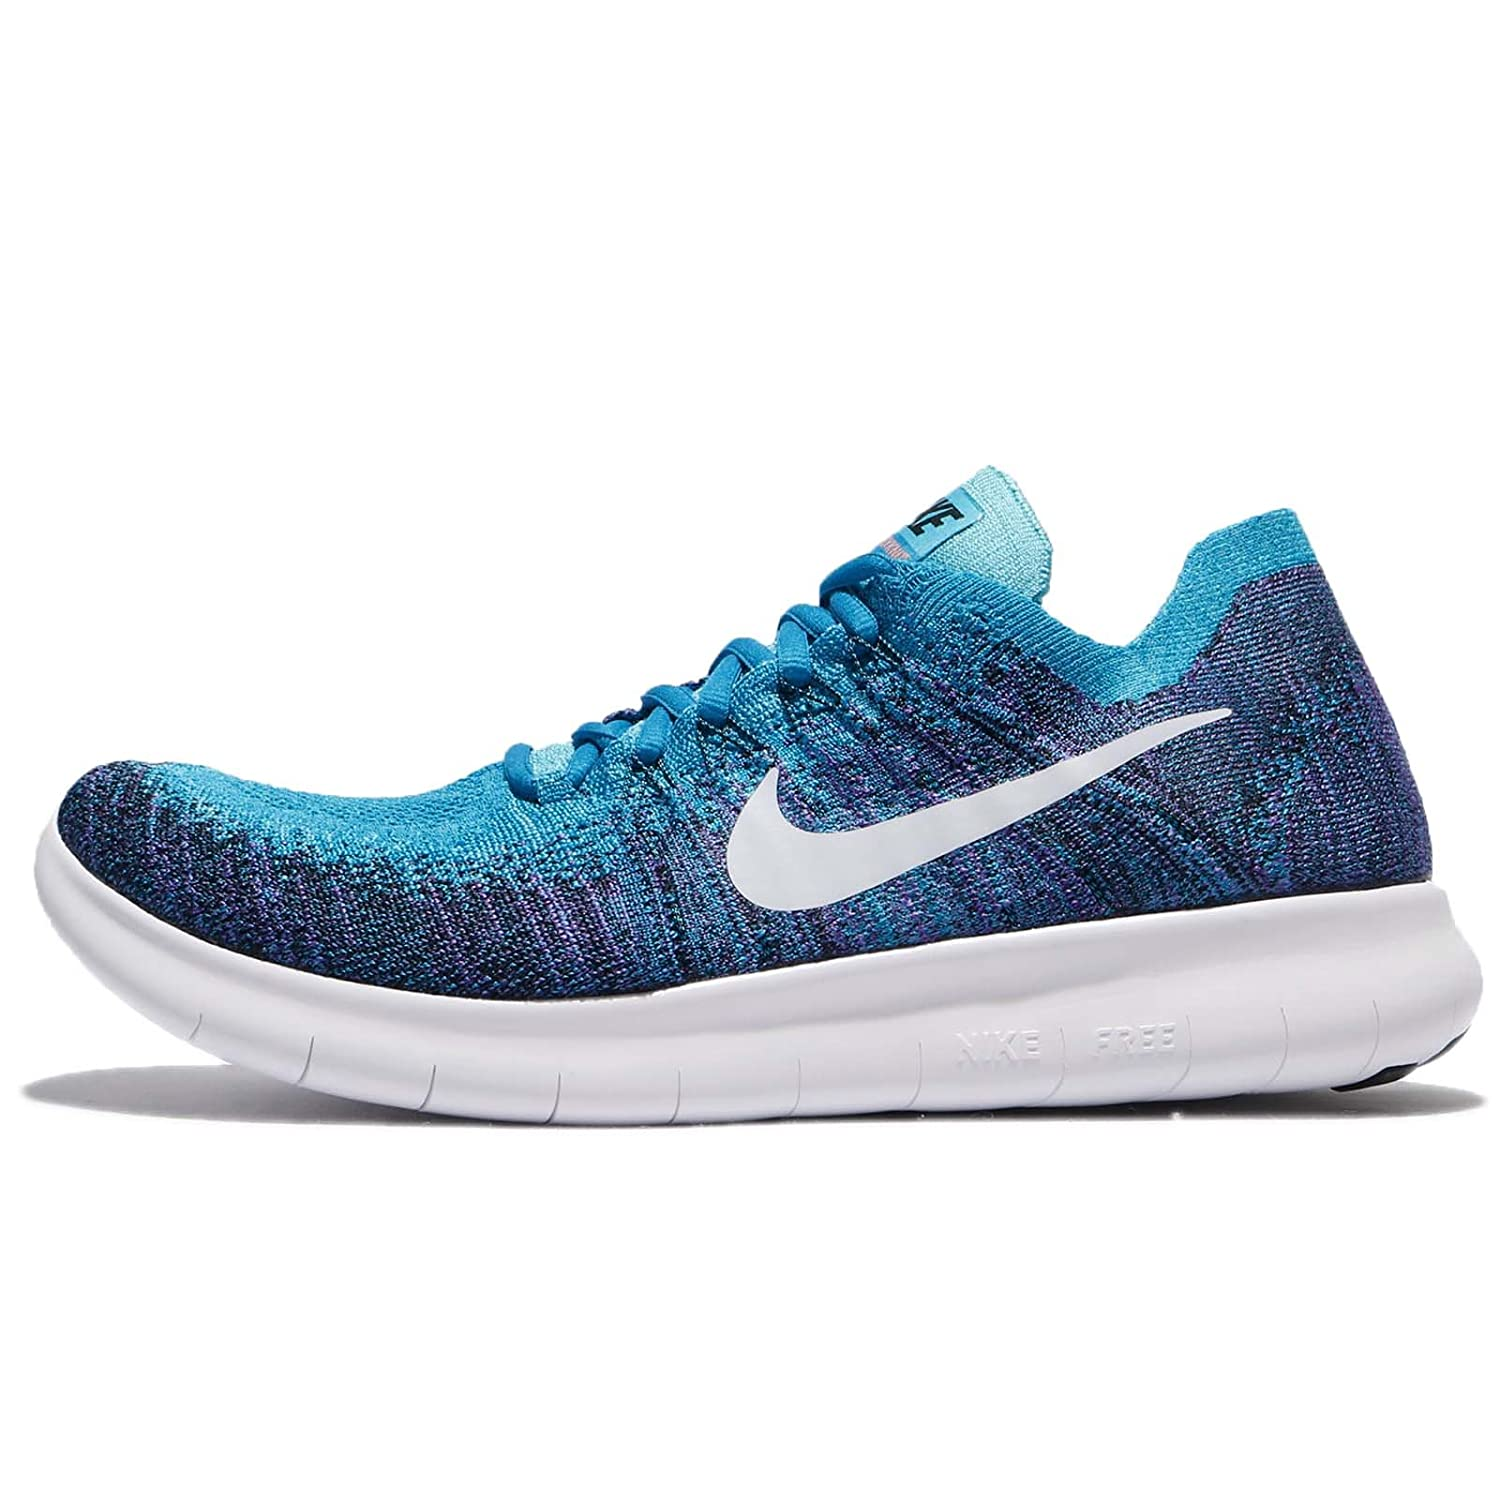 purchase cheap 43d09 60f1f Amazon.com | Nike Free RN Flyknit 2017 Mens Road Running Shoes 880843-403  Size 8 D(M) US | Basketball